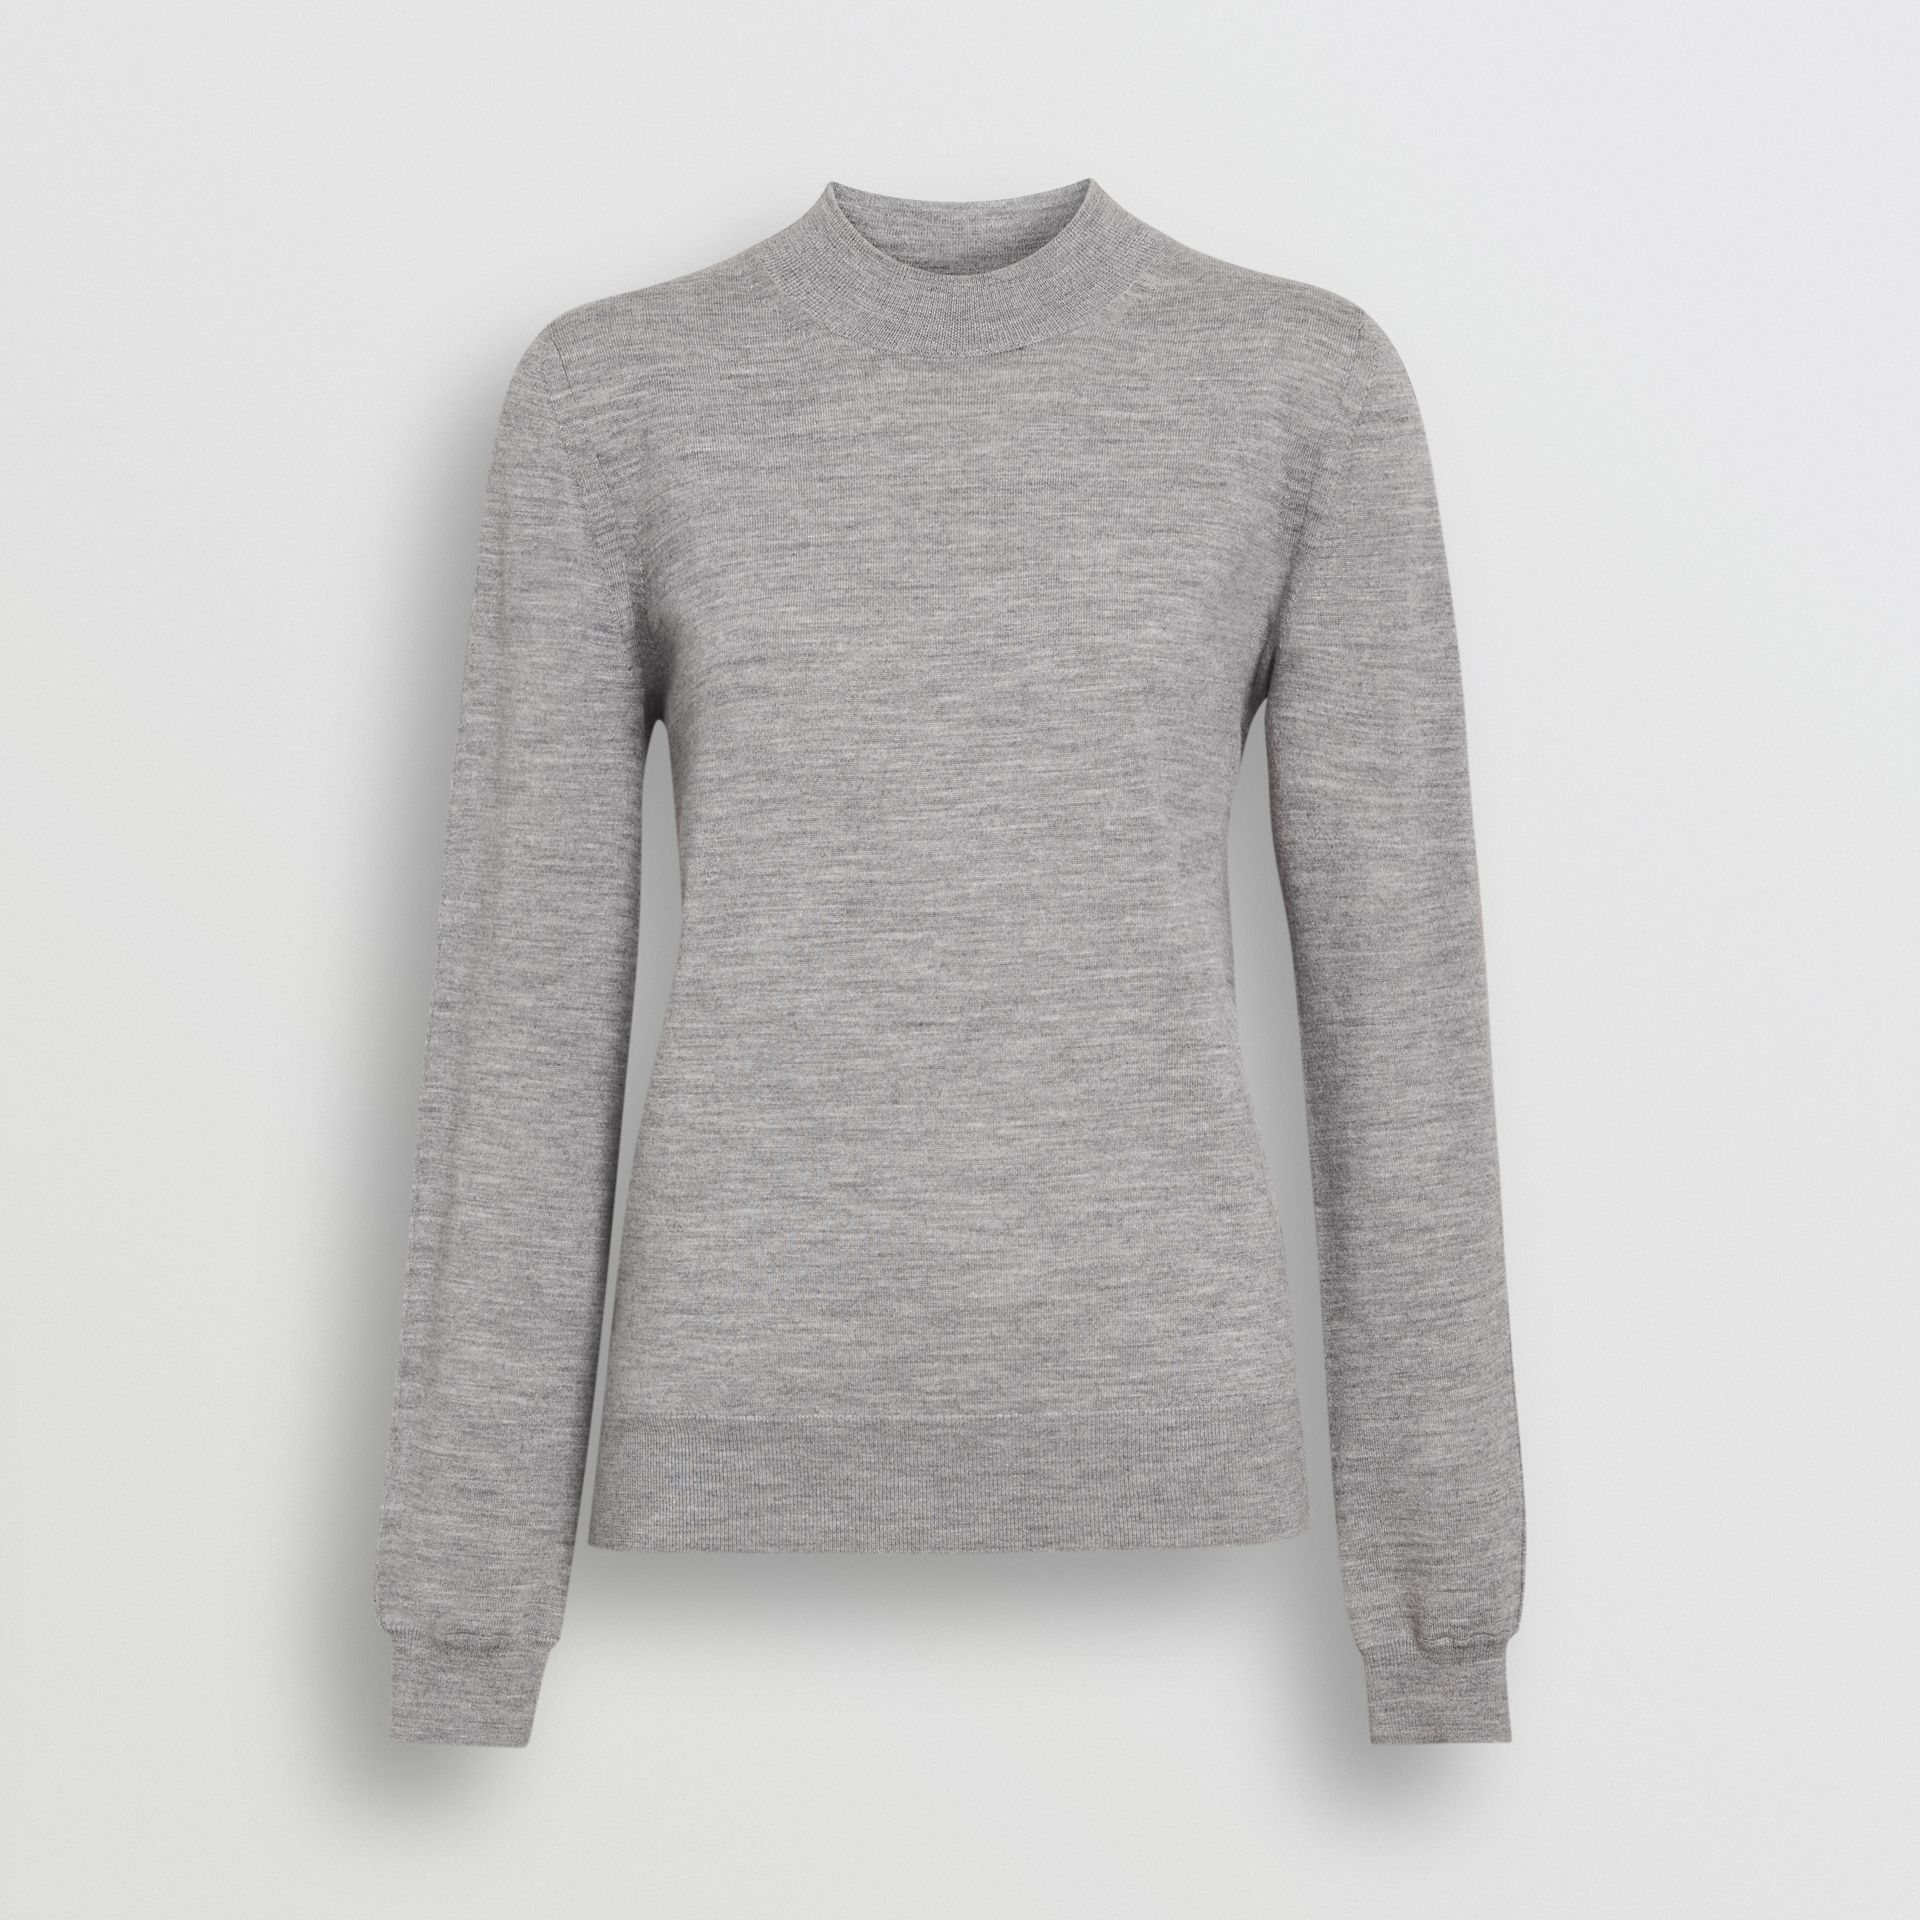 Merino Wool Crew Neck Sweater in Grey Melange - Women | Burberry Australia - gallery image 3